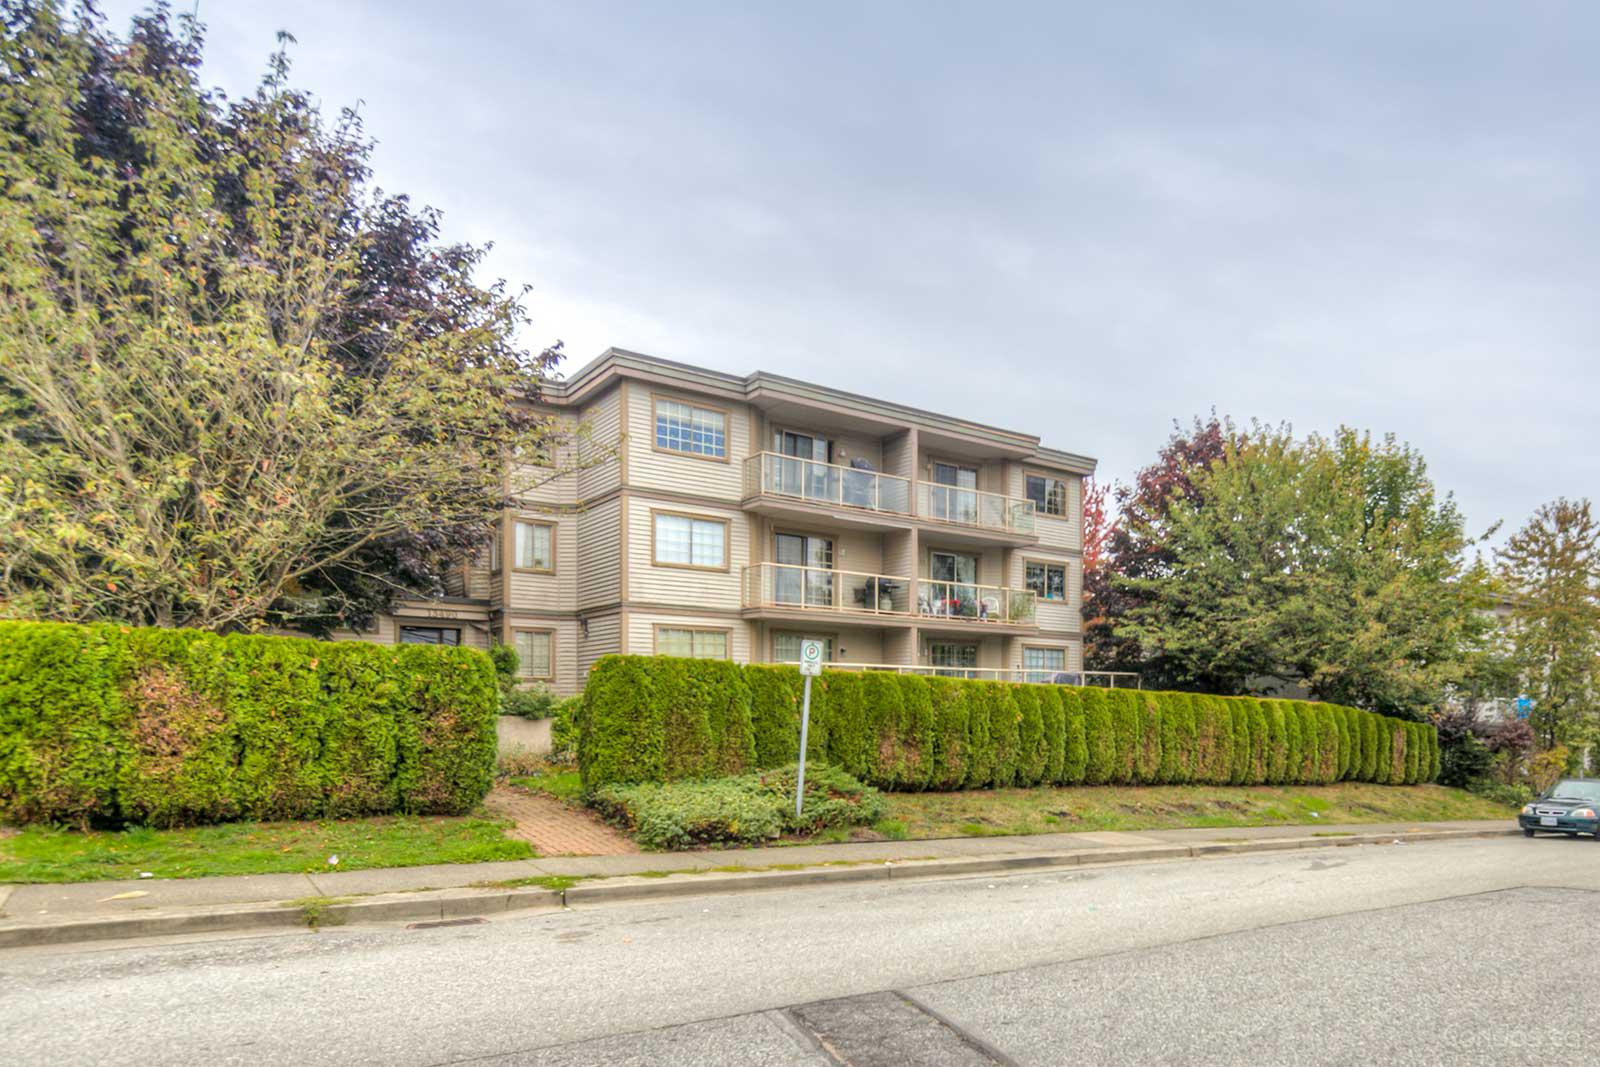 Hilton View Manor at 13490 Hilton Rd, Surrey 1